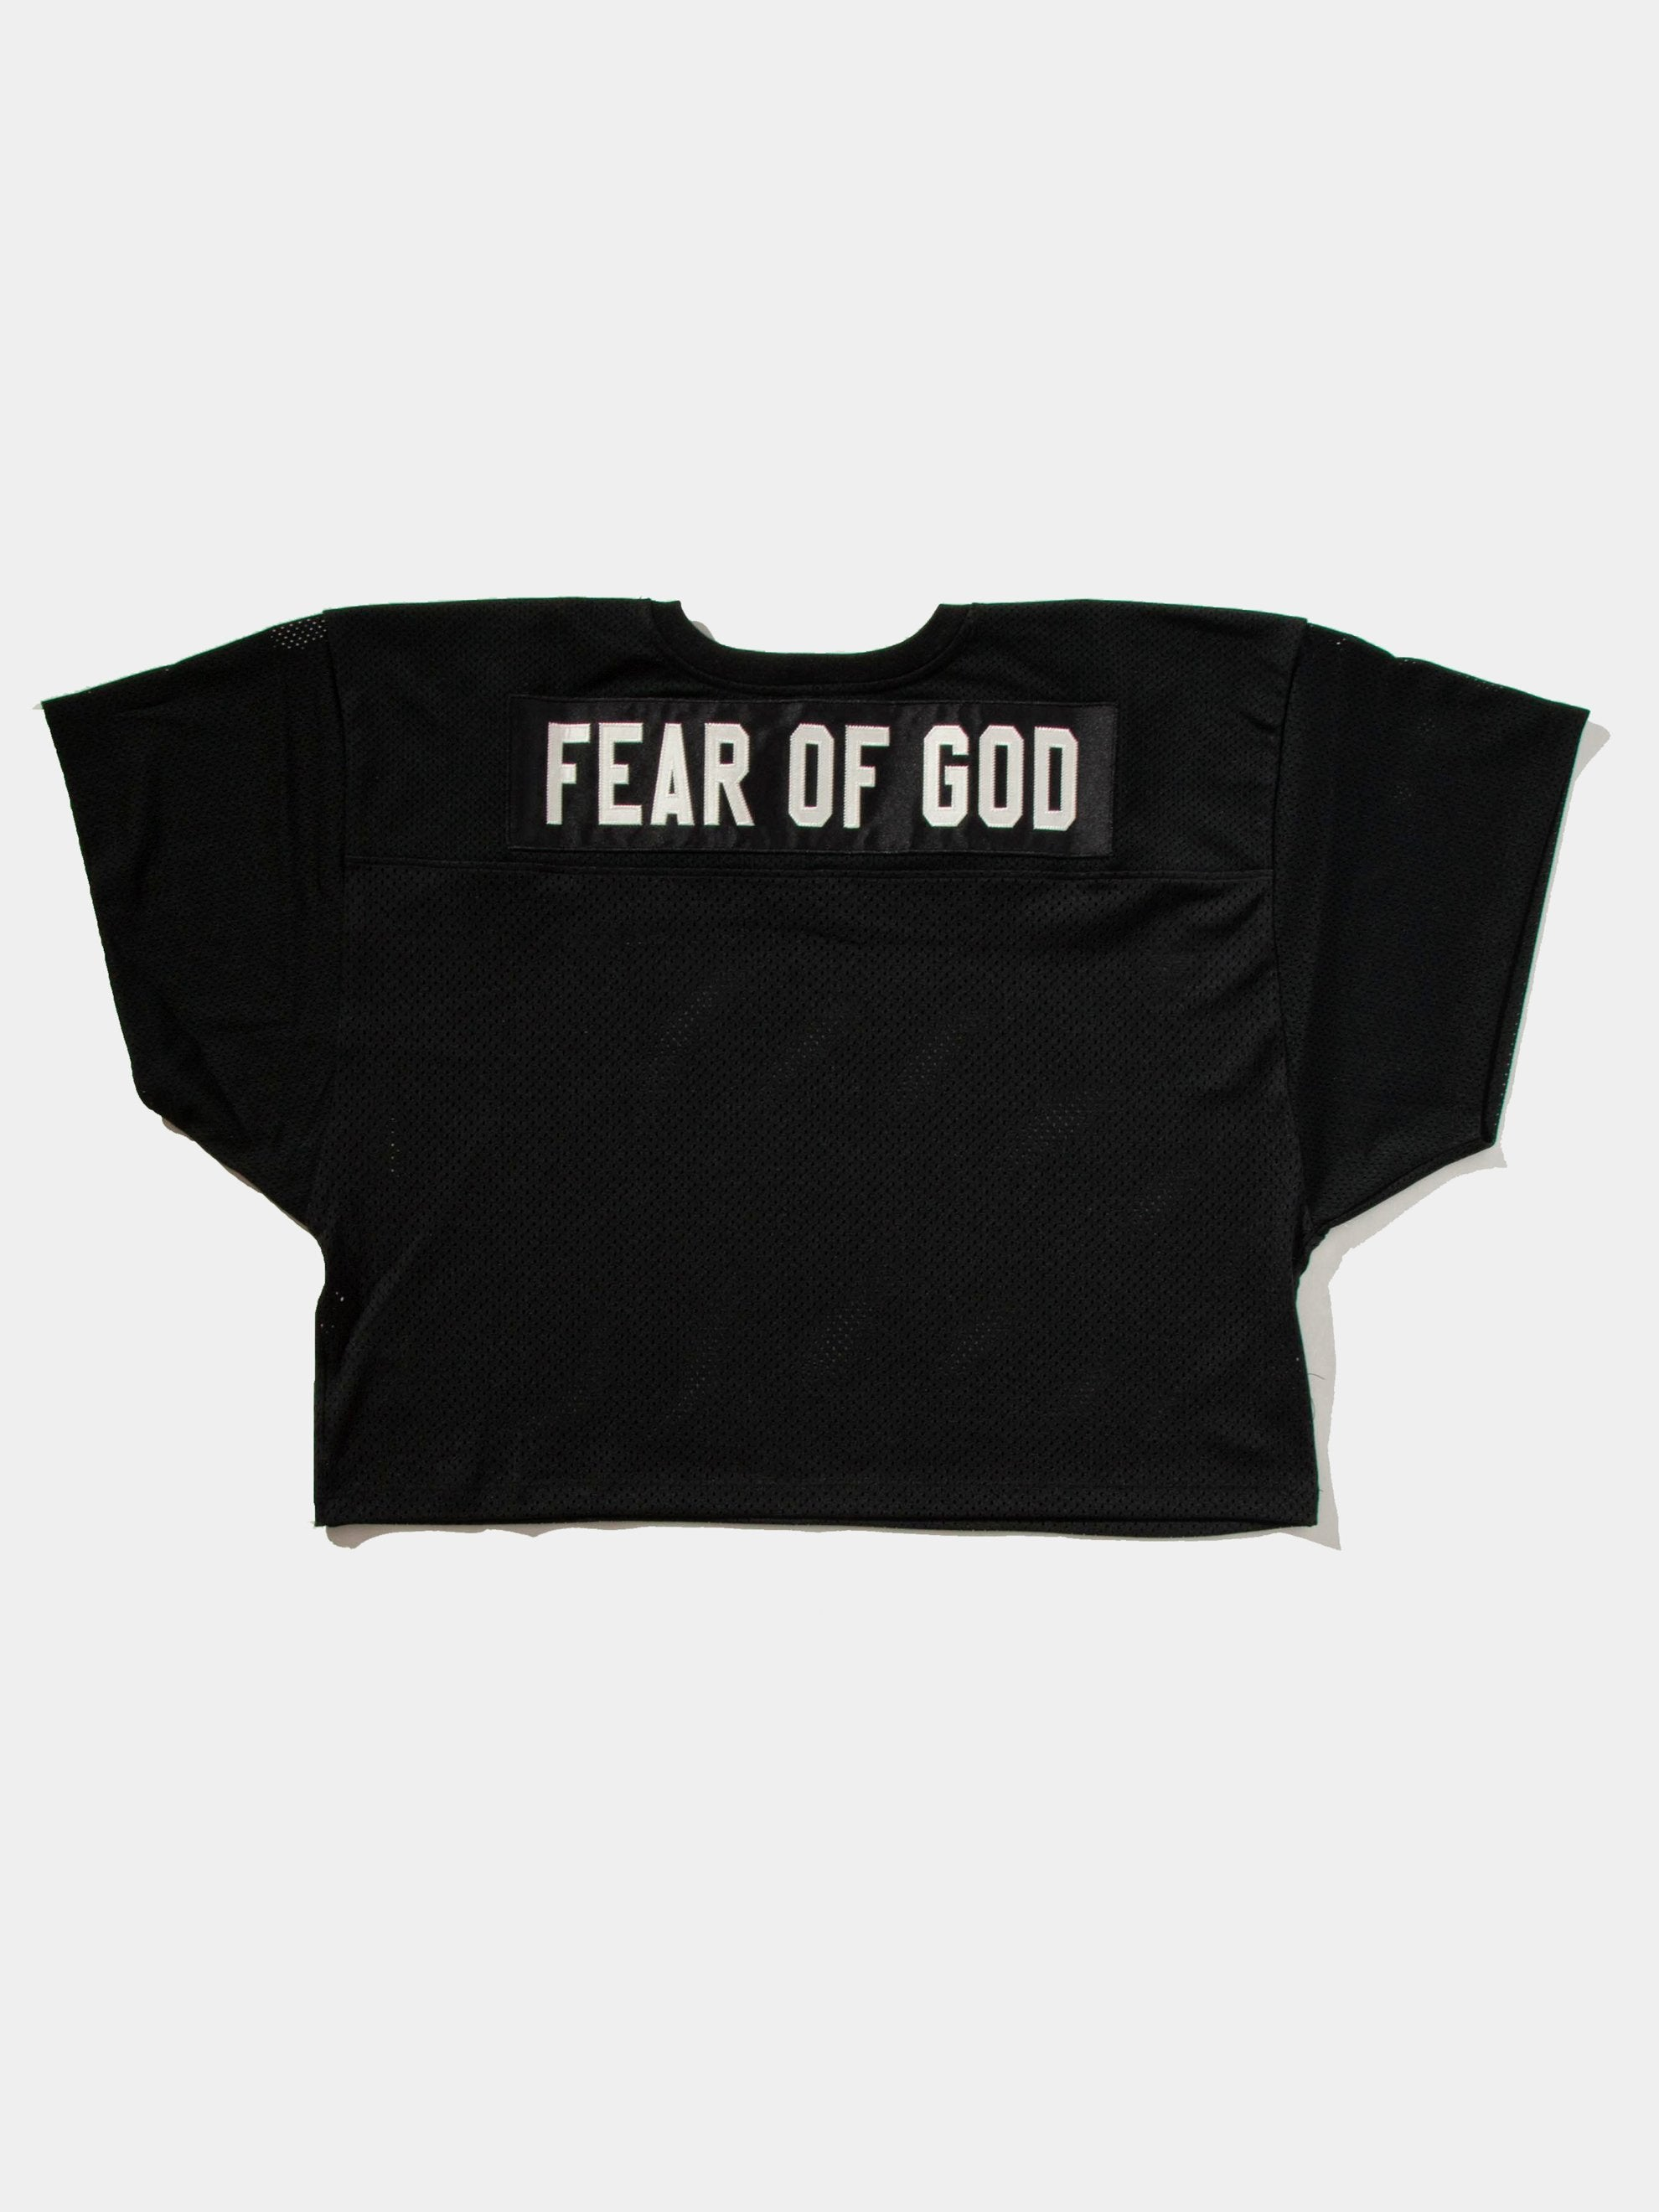 Mesh Football Jersey (Fear of God)